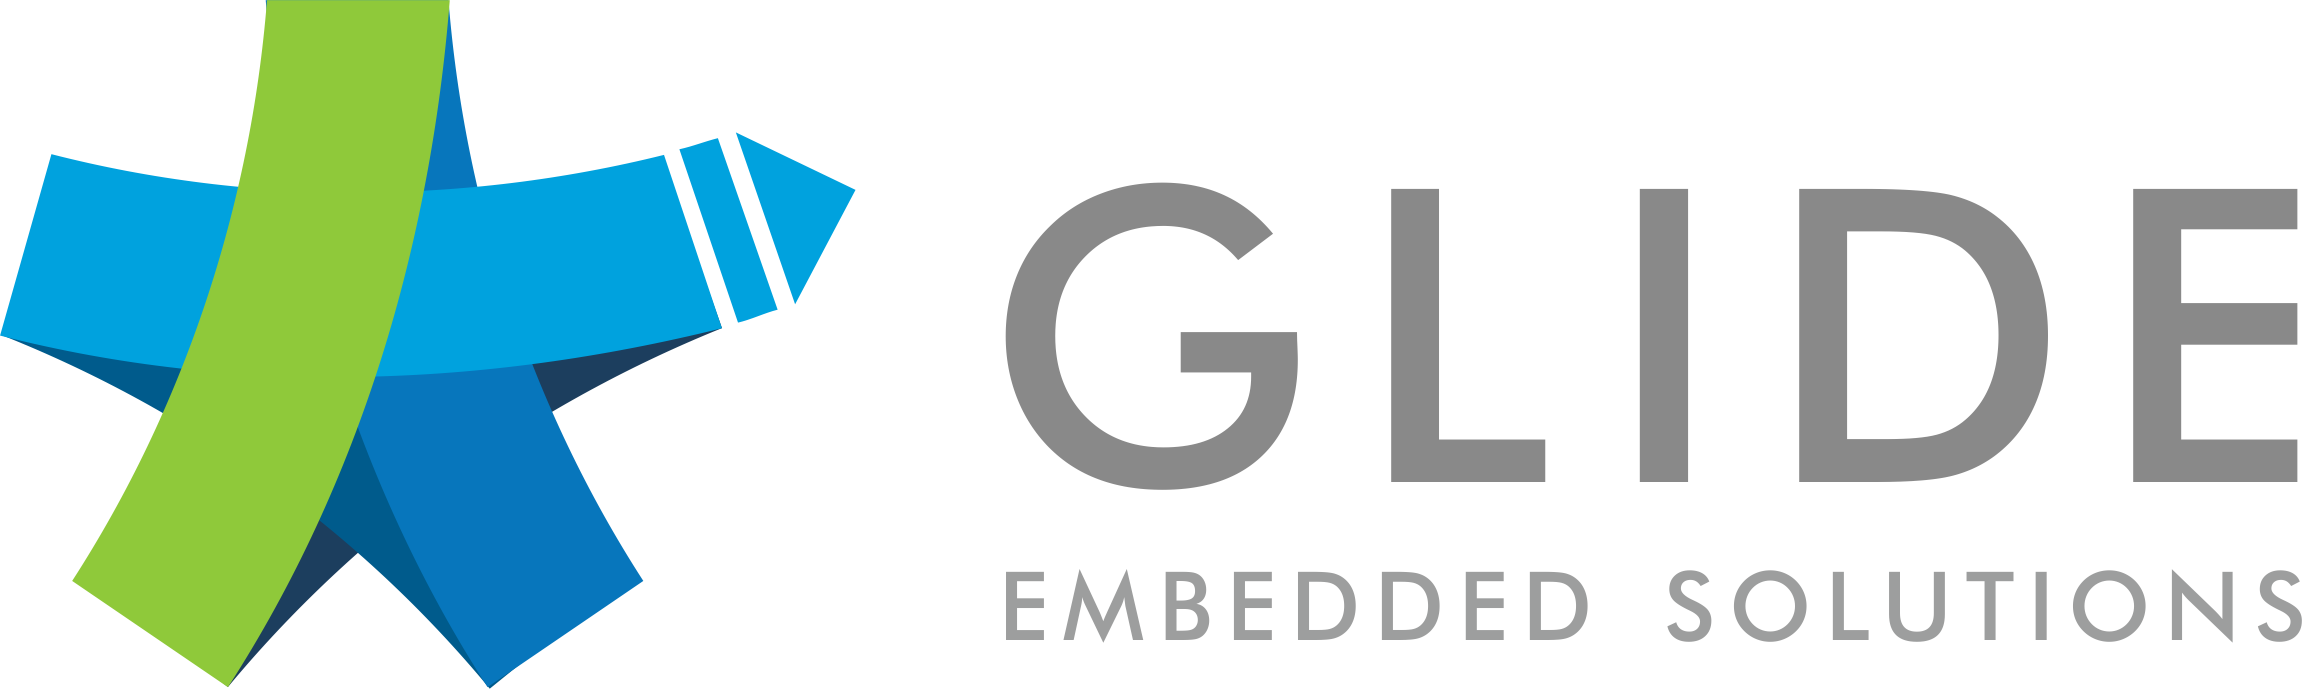 Glide Technology Pvt. Ltd.